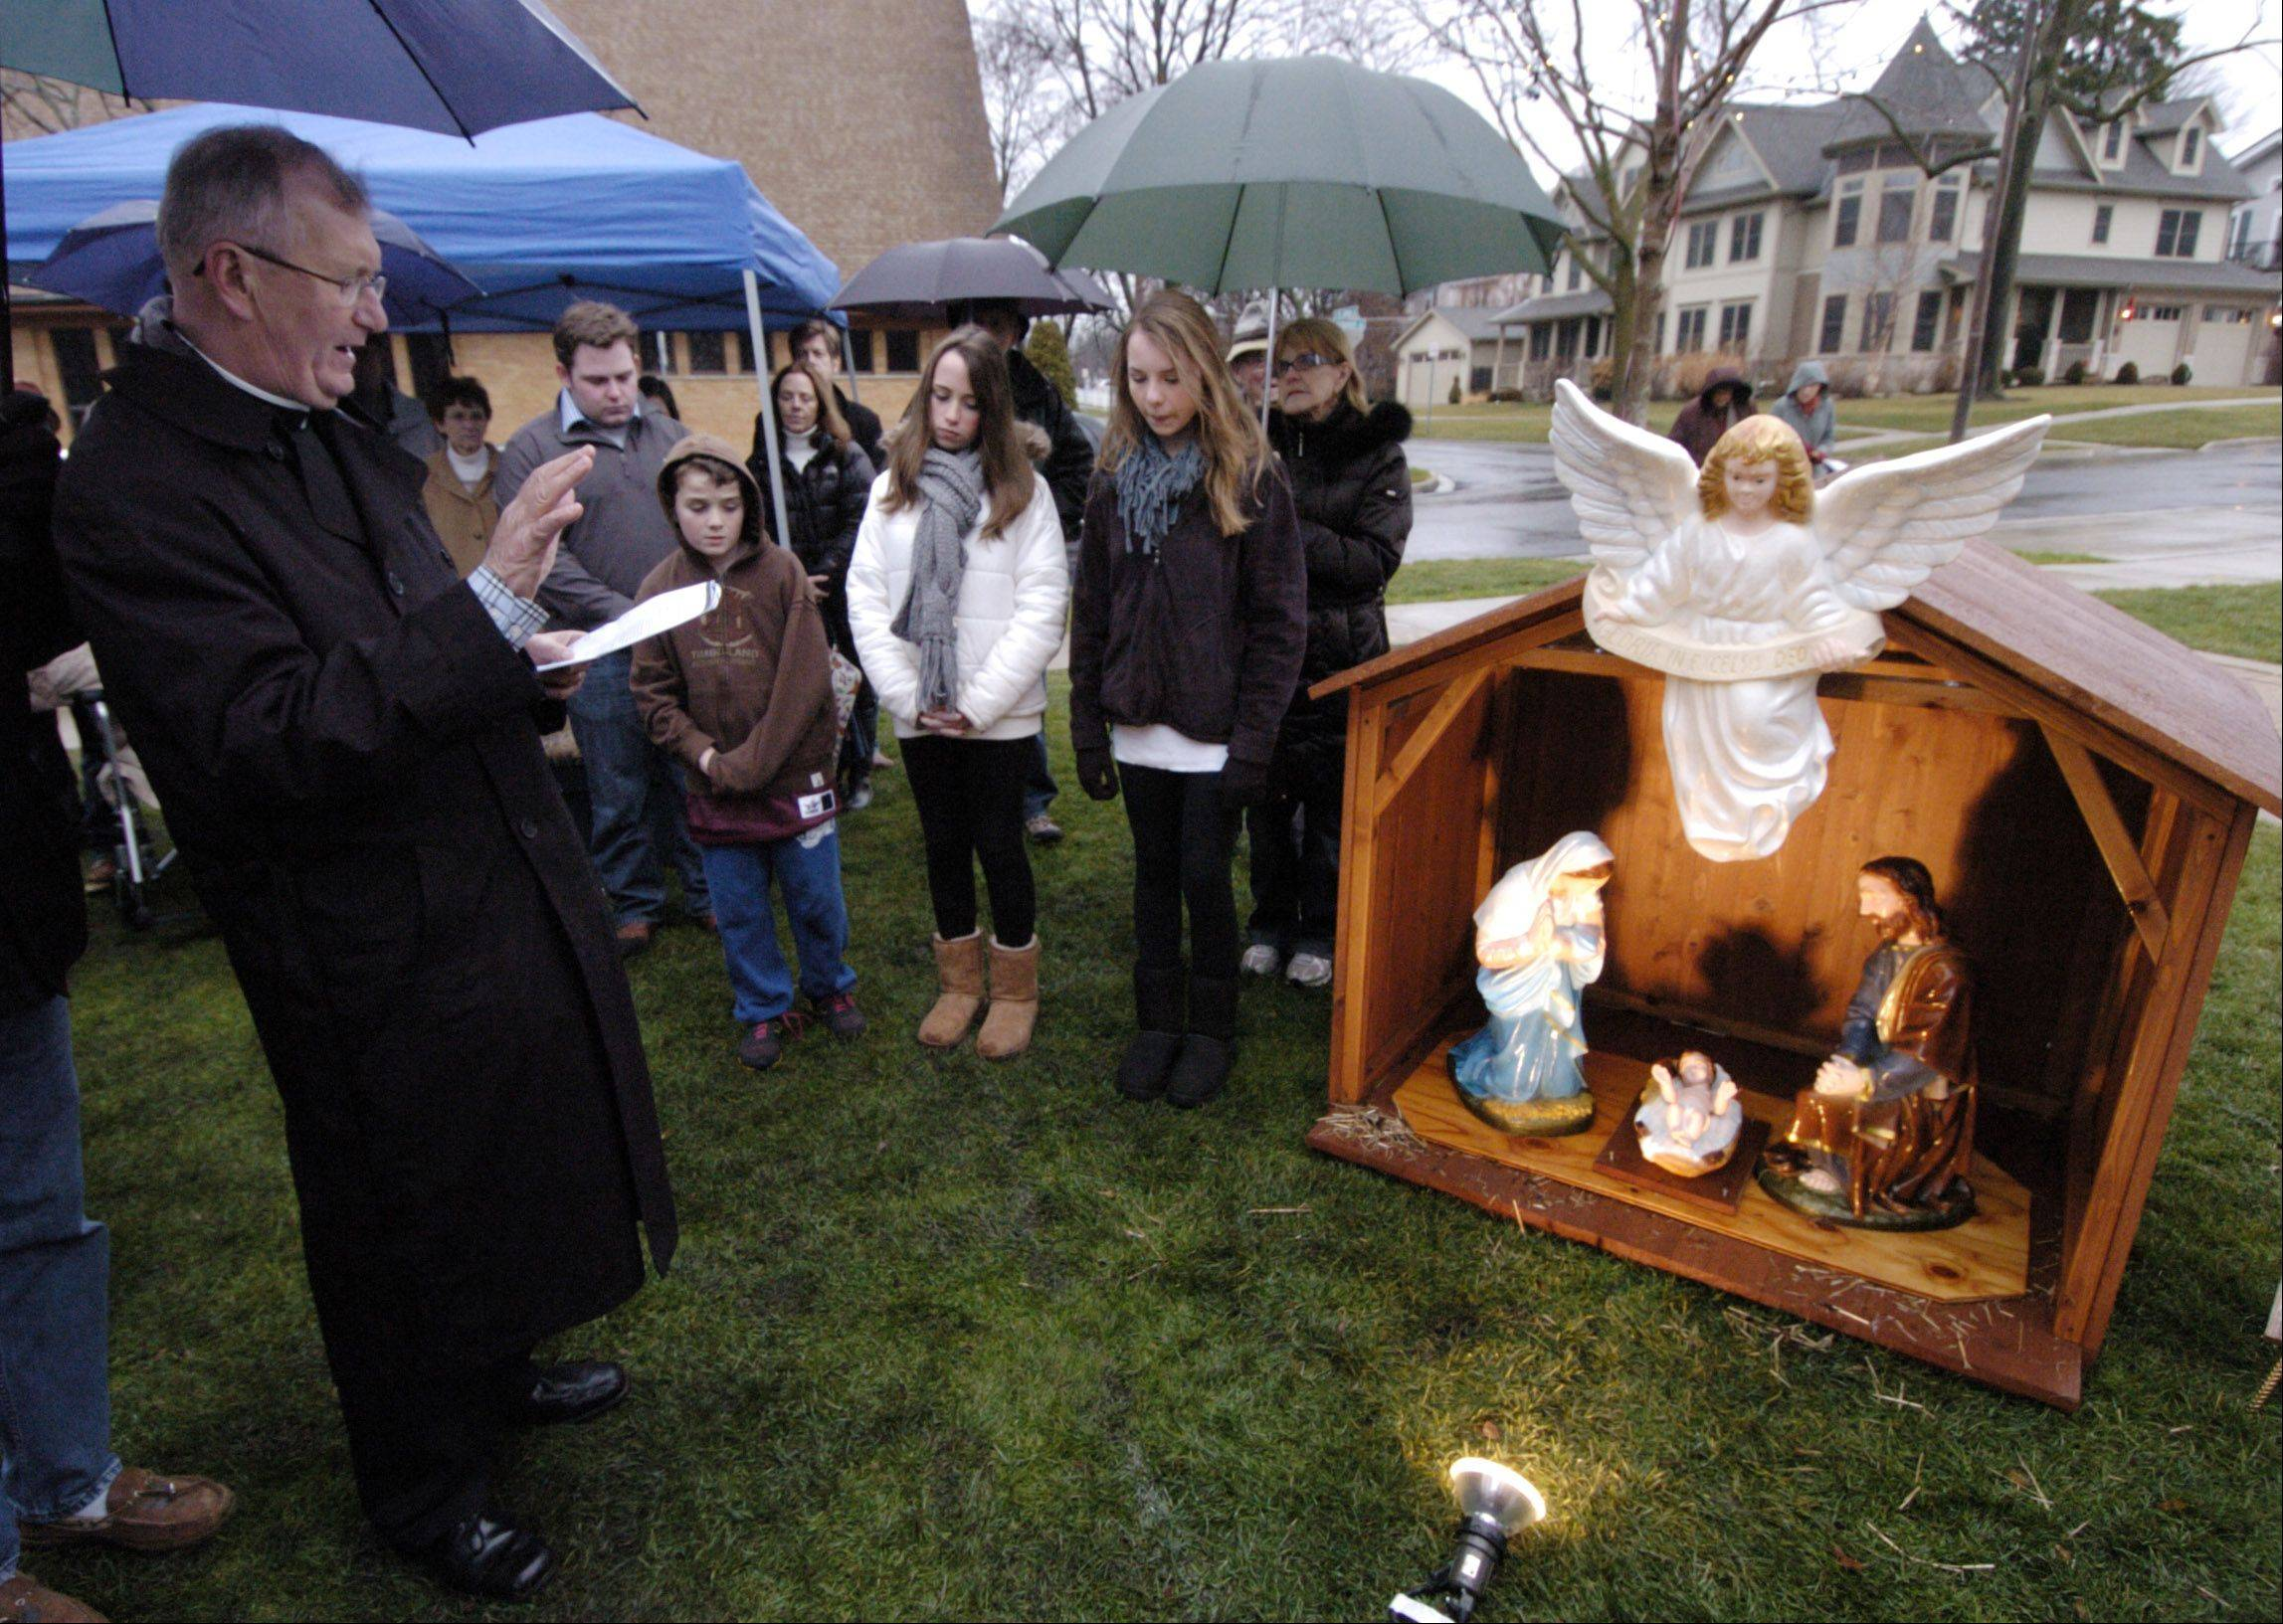 Rev. Bill Zavaski, pastor of Saint James Catholic Church in Arlington Heights, blesses the newly added Nativity scene Saturday at North School Park in Arlington Heights. The Illinois Nativity Scene Committee hosted a ceremony after receiving a permit to display the Nativity until Jan. 6.